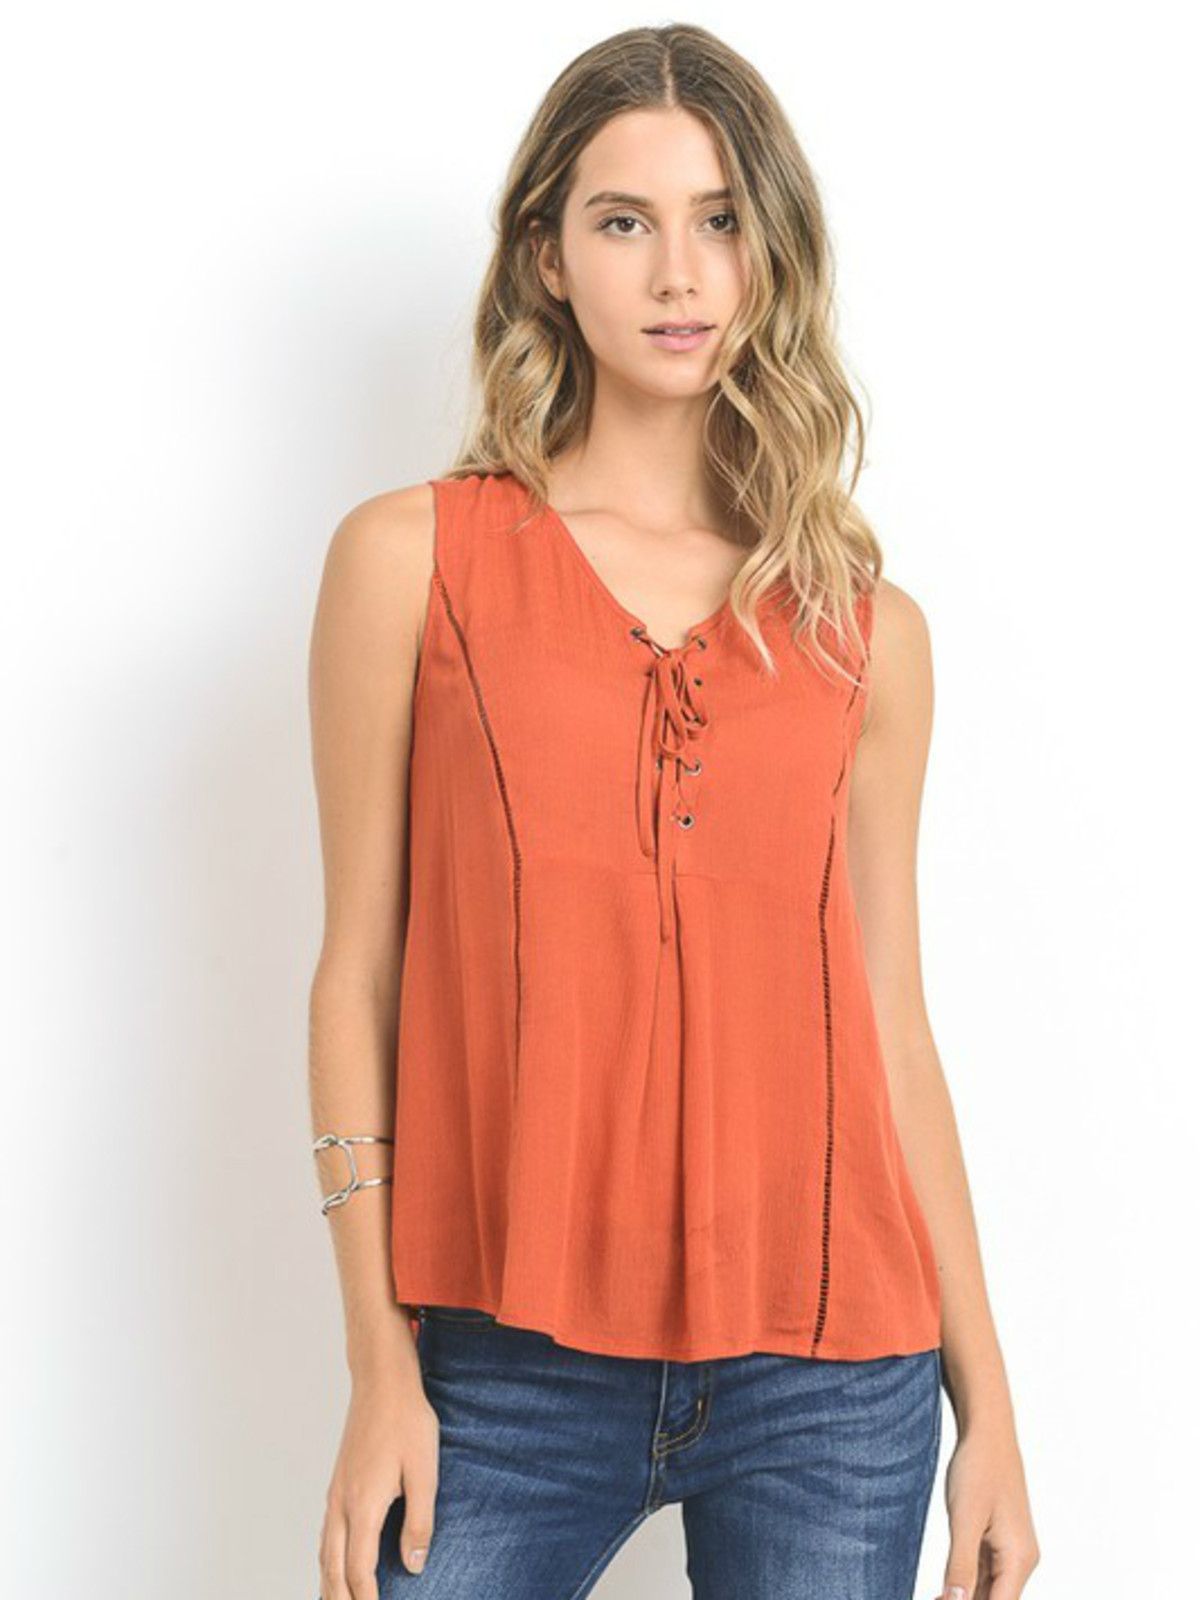 9e4e725d557 5 best Austin boutiques to shop for fabulous game day style ...